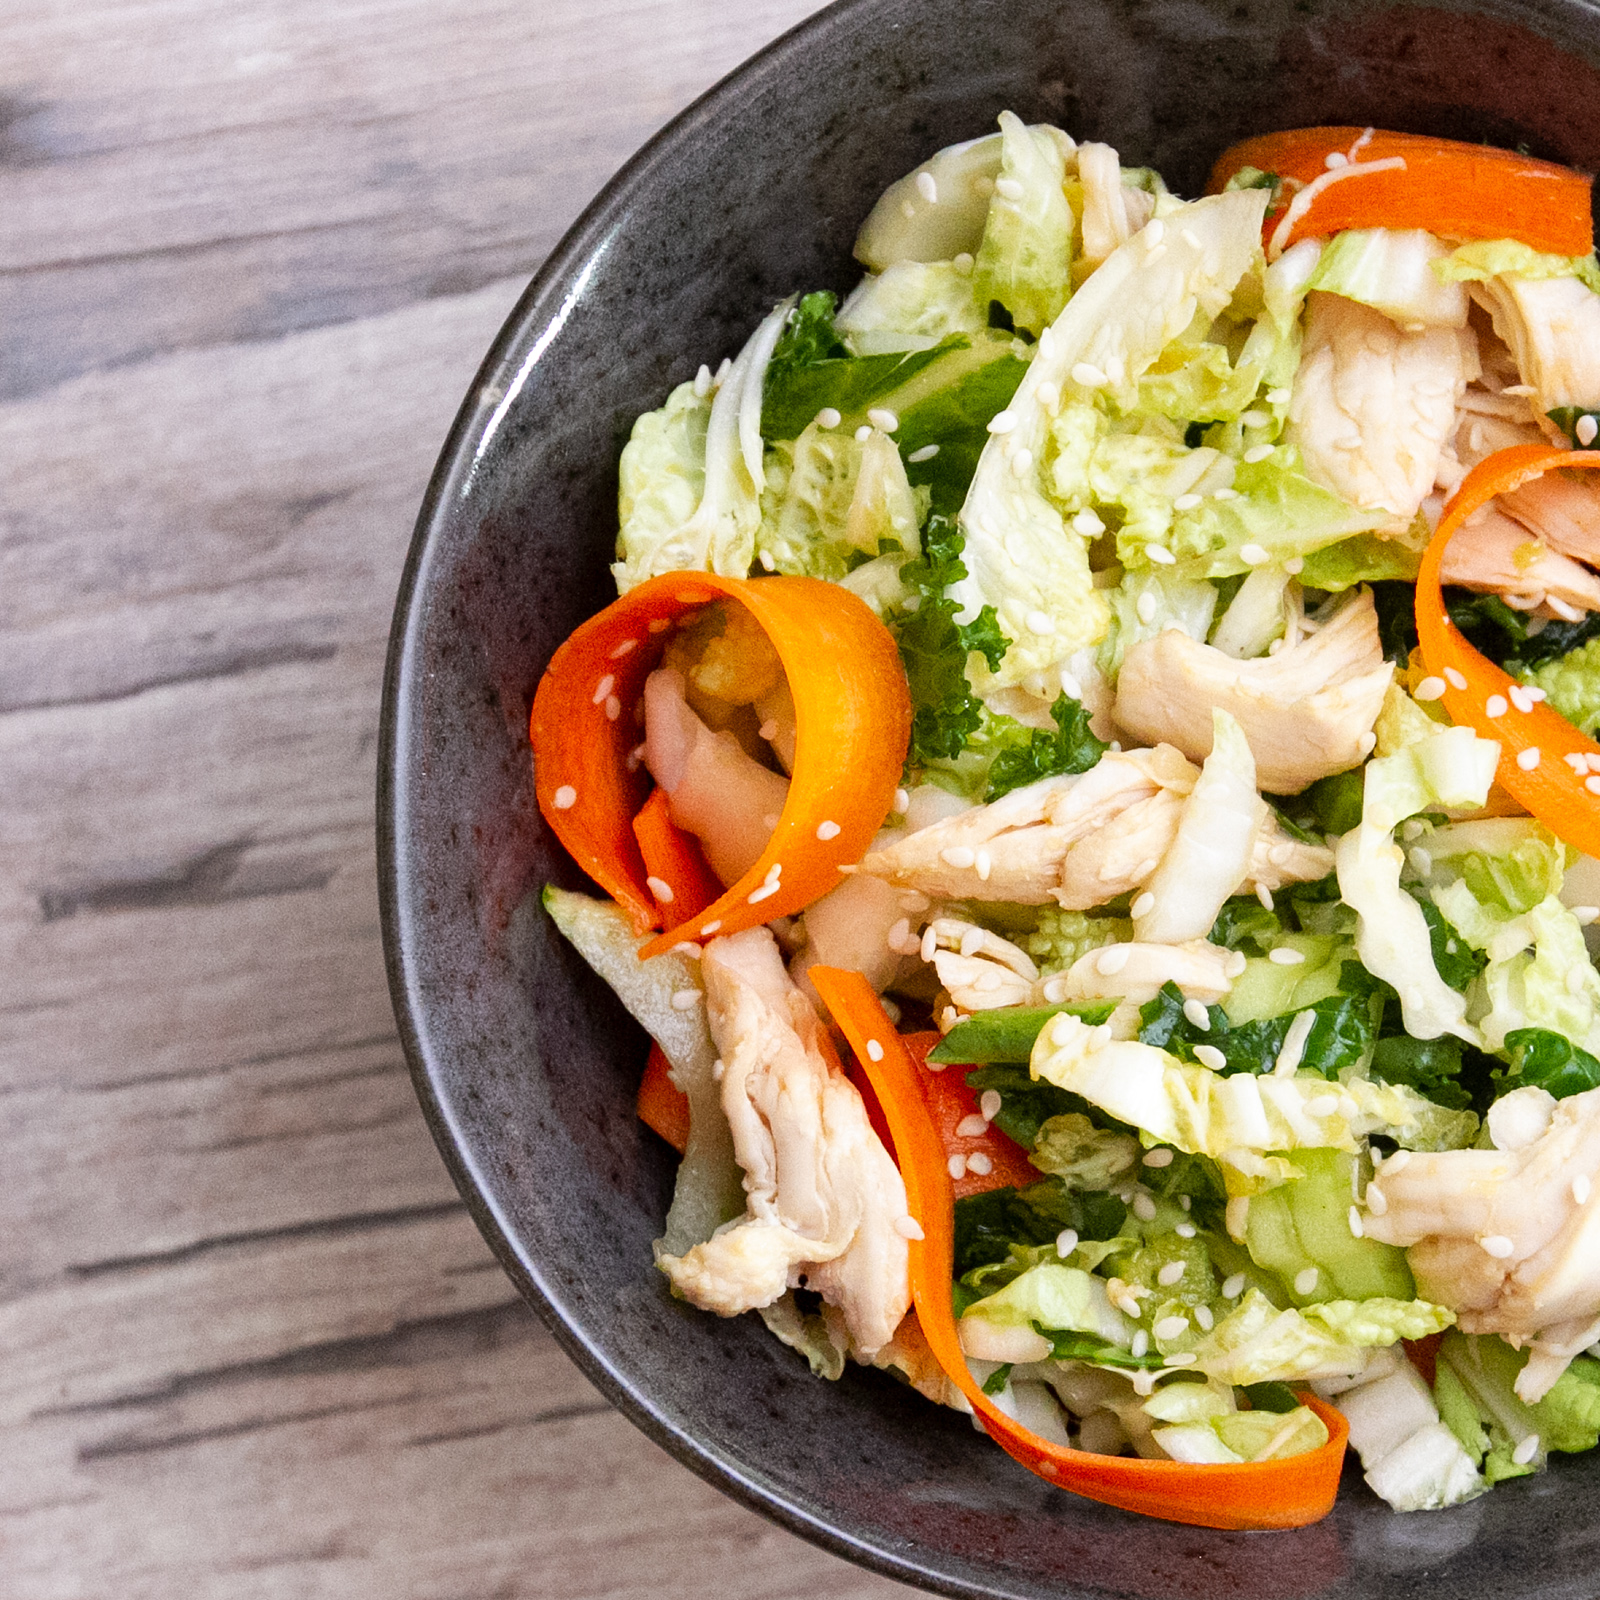 Napa Cabbage & Chicken Salad With Toasted Sesame Dressing